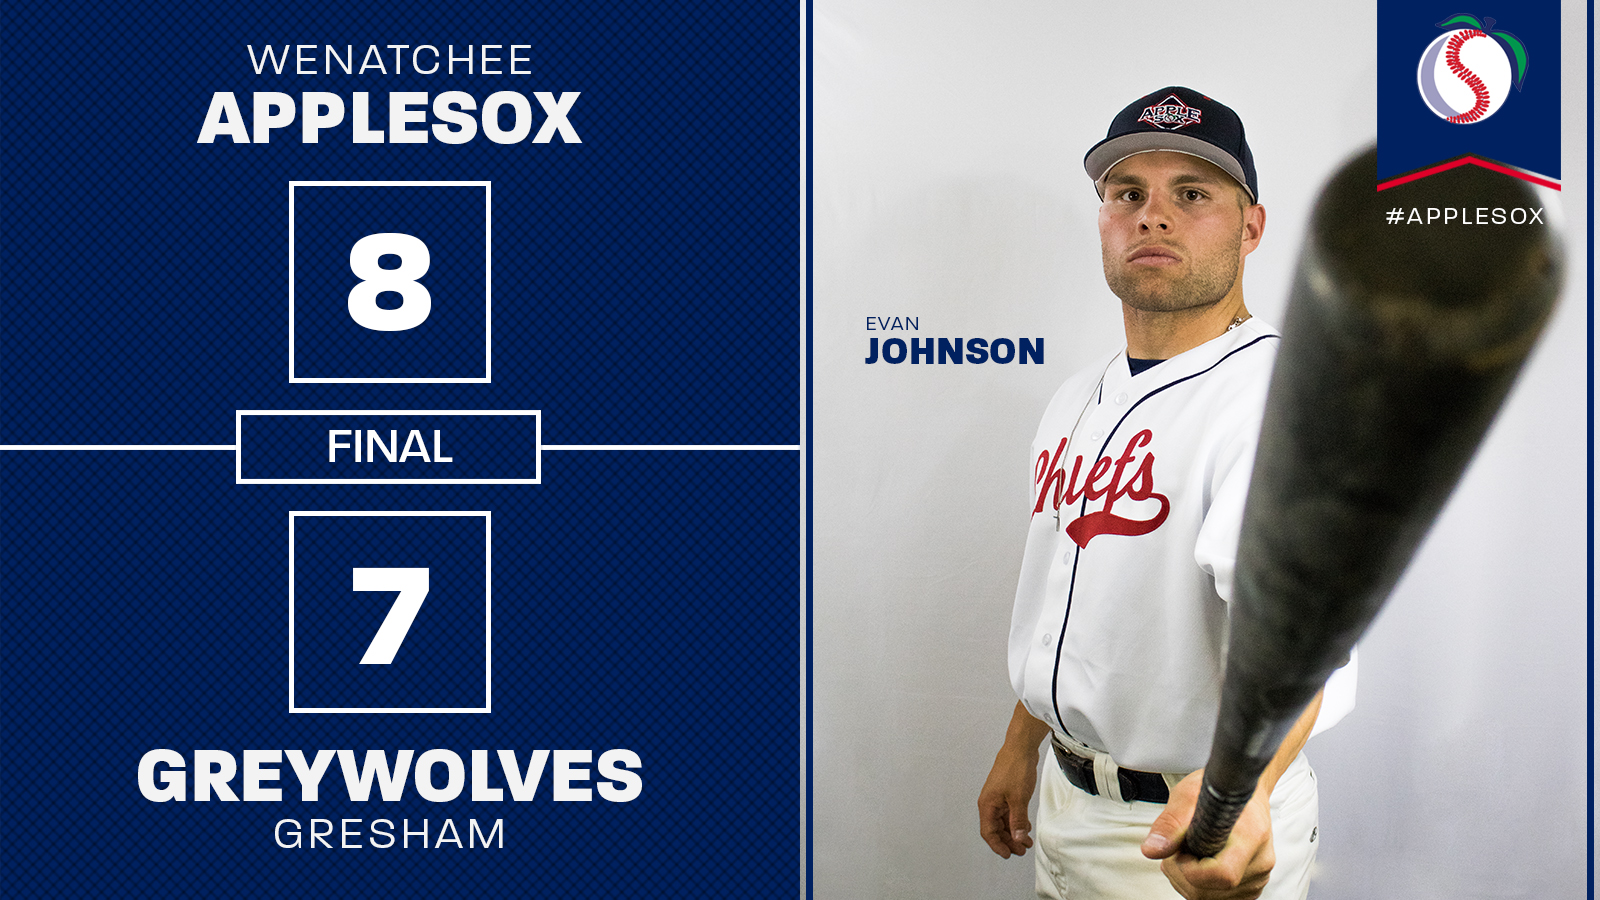 Evan Johnson is now tied for the WCL lead in home runs (6) and leads the league with 21 runs batted in.